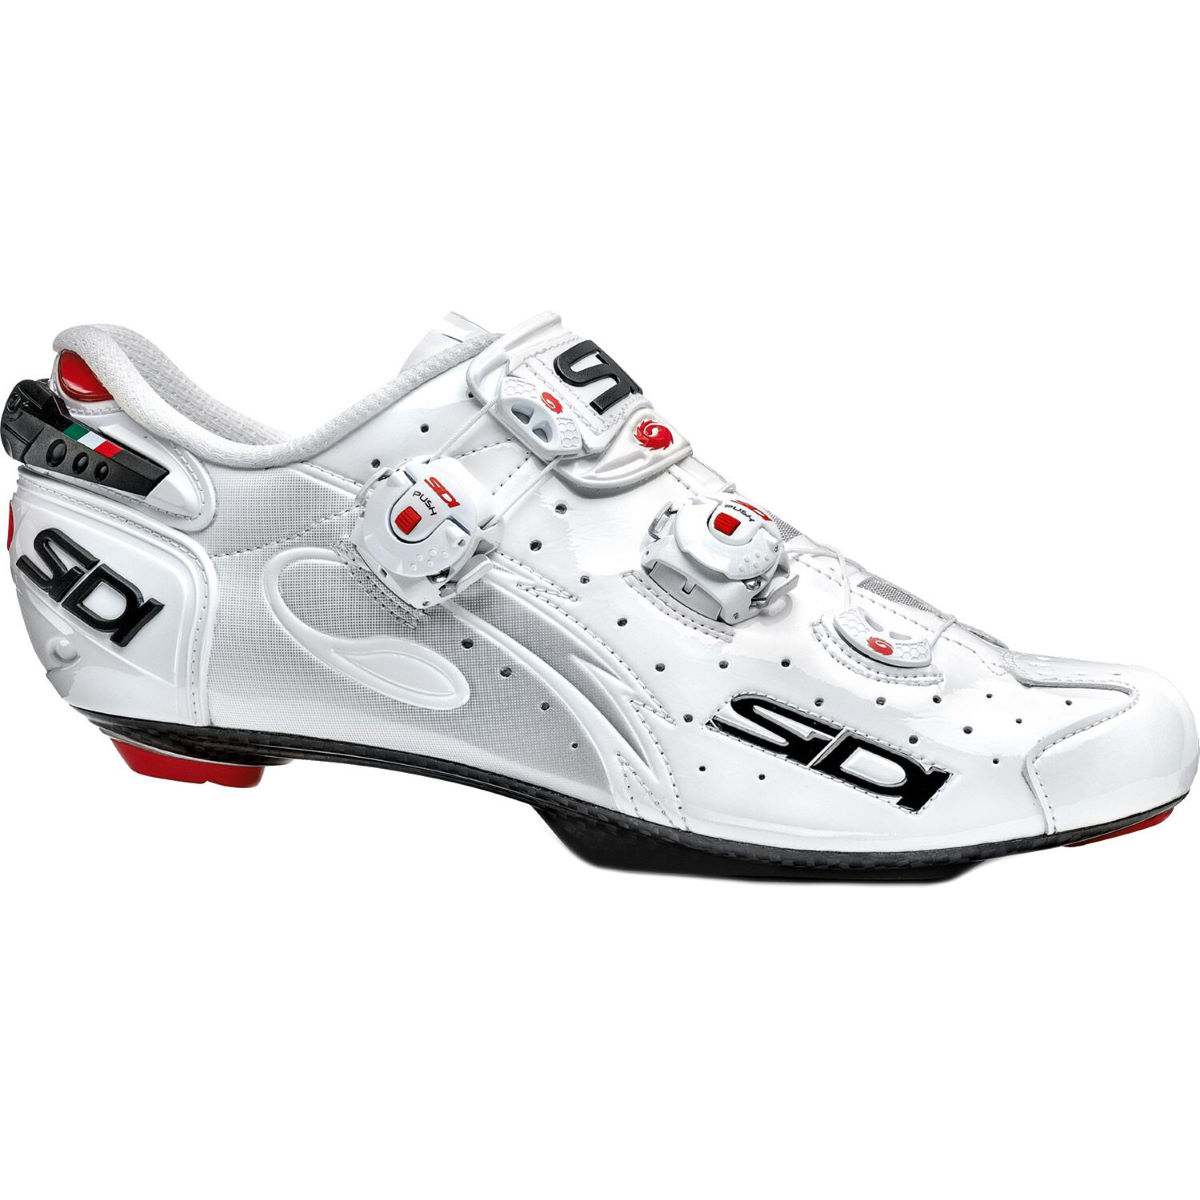 Chaussures de route Sidi Wire Carbon SP (Speedplay) - 43 Blanc/Blanc Chaussures de route